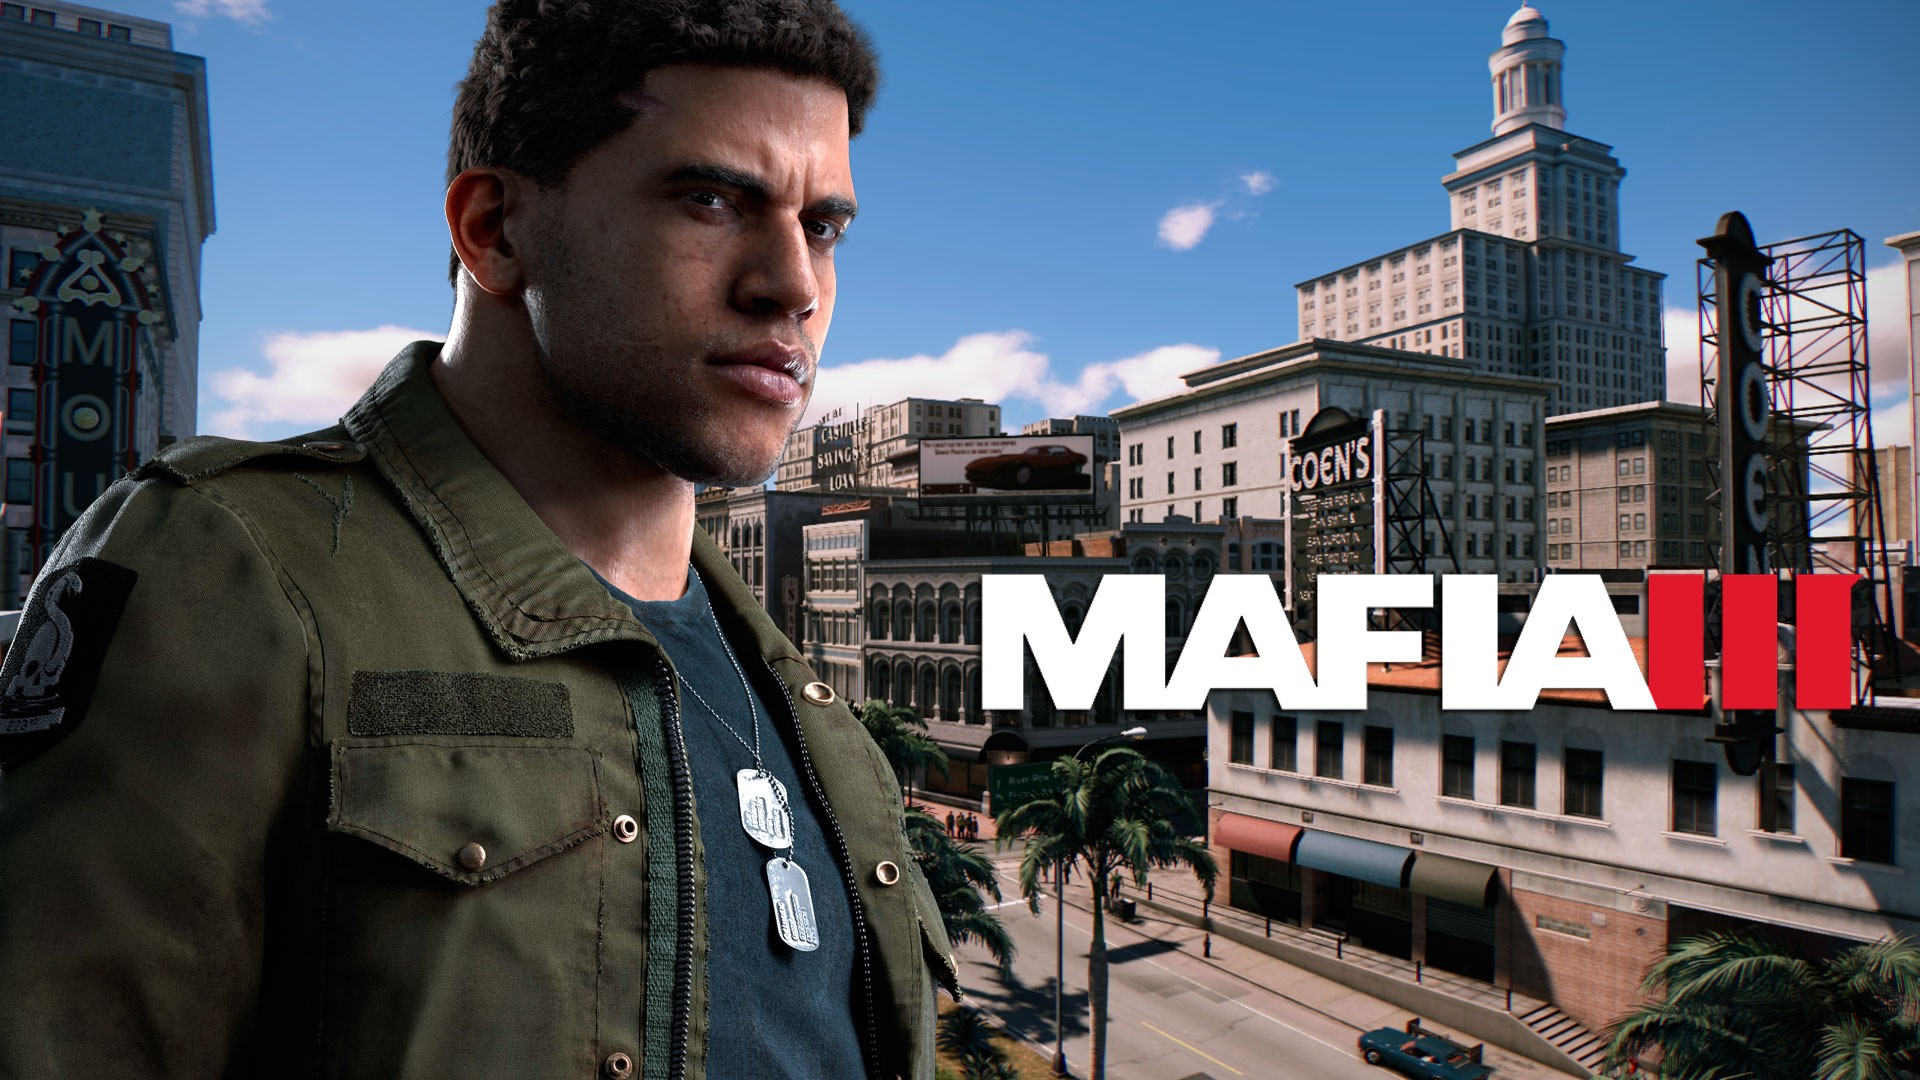 Mafia 3 HD Games 4k Wallpapers Images Backgrounds Photos And